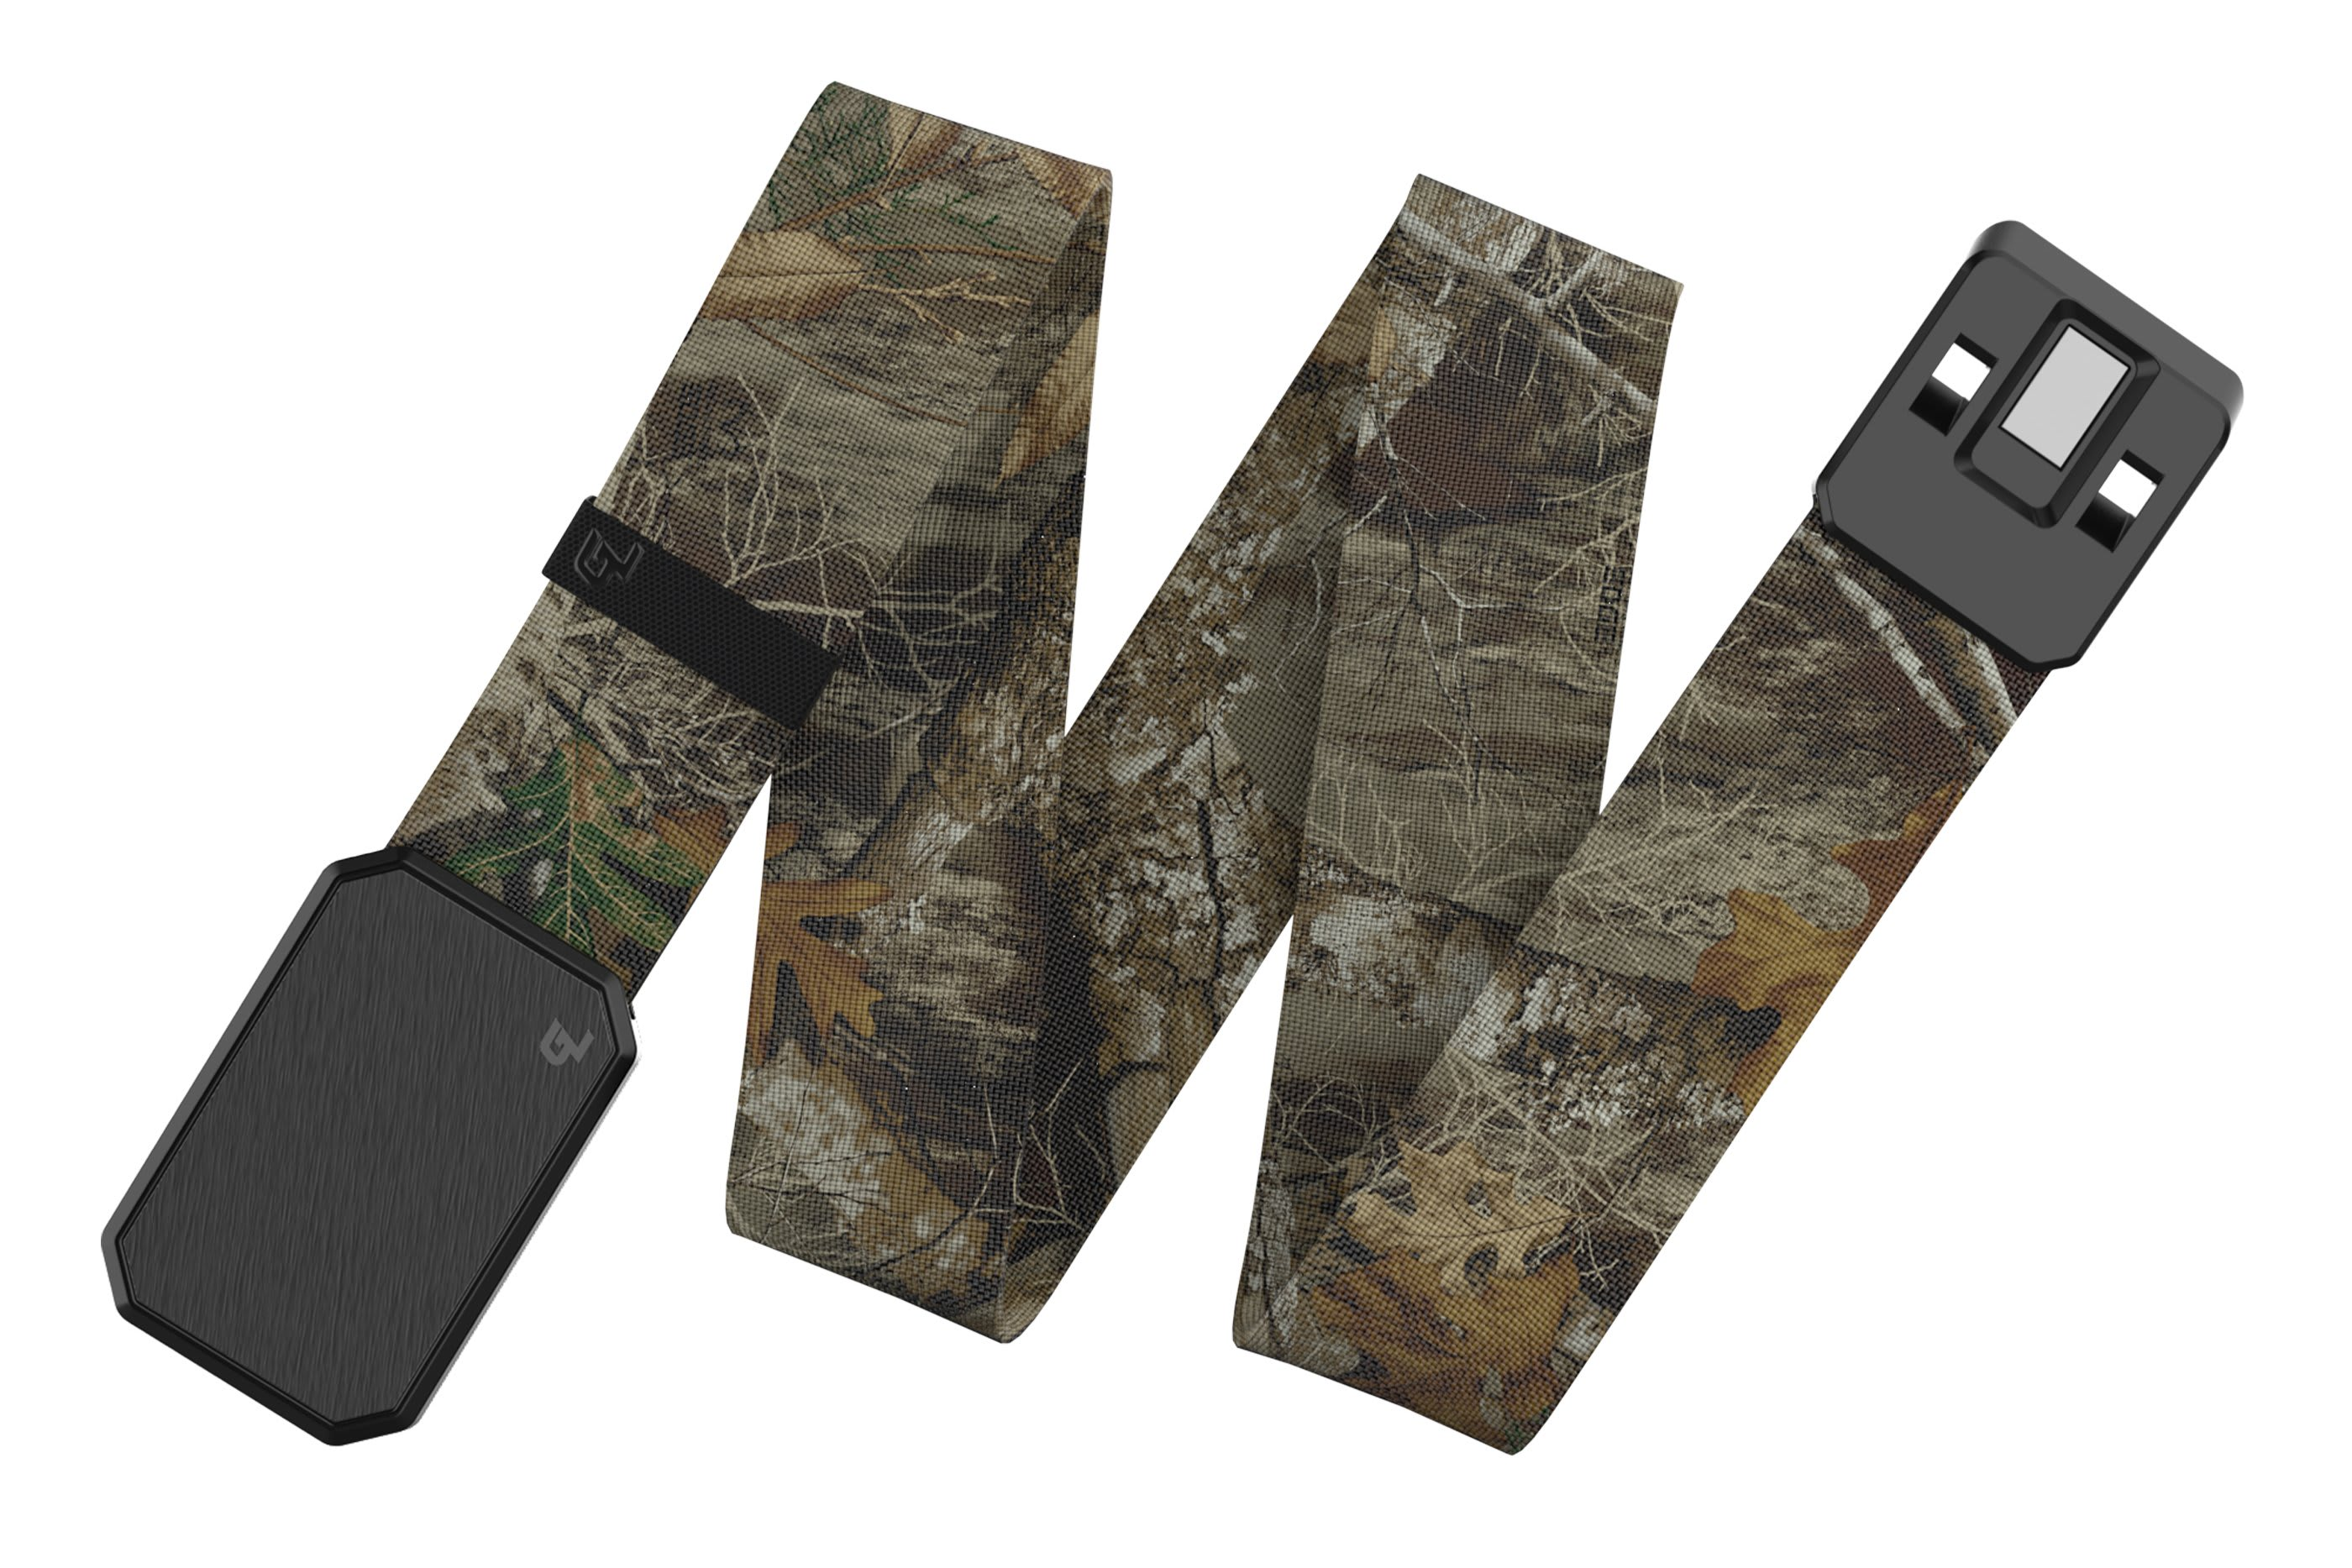 Groove Belt Black/Realtree Edge viewed spread out